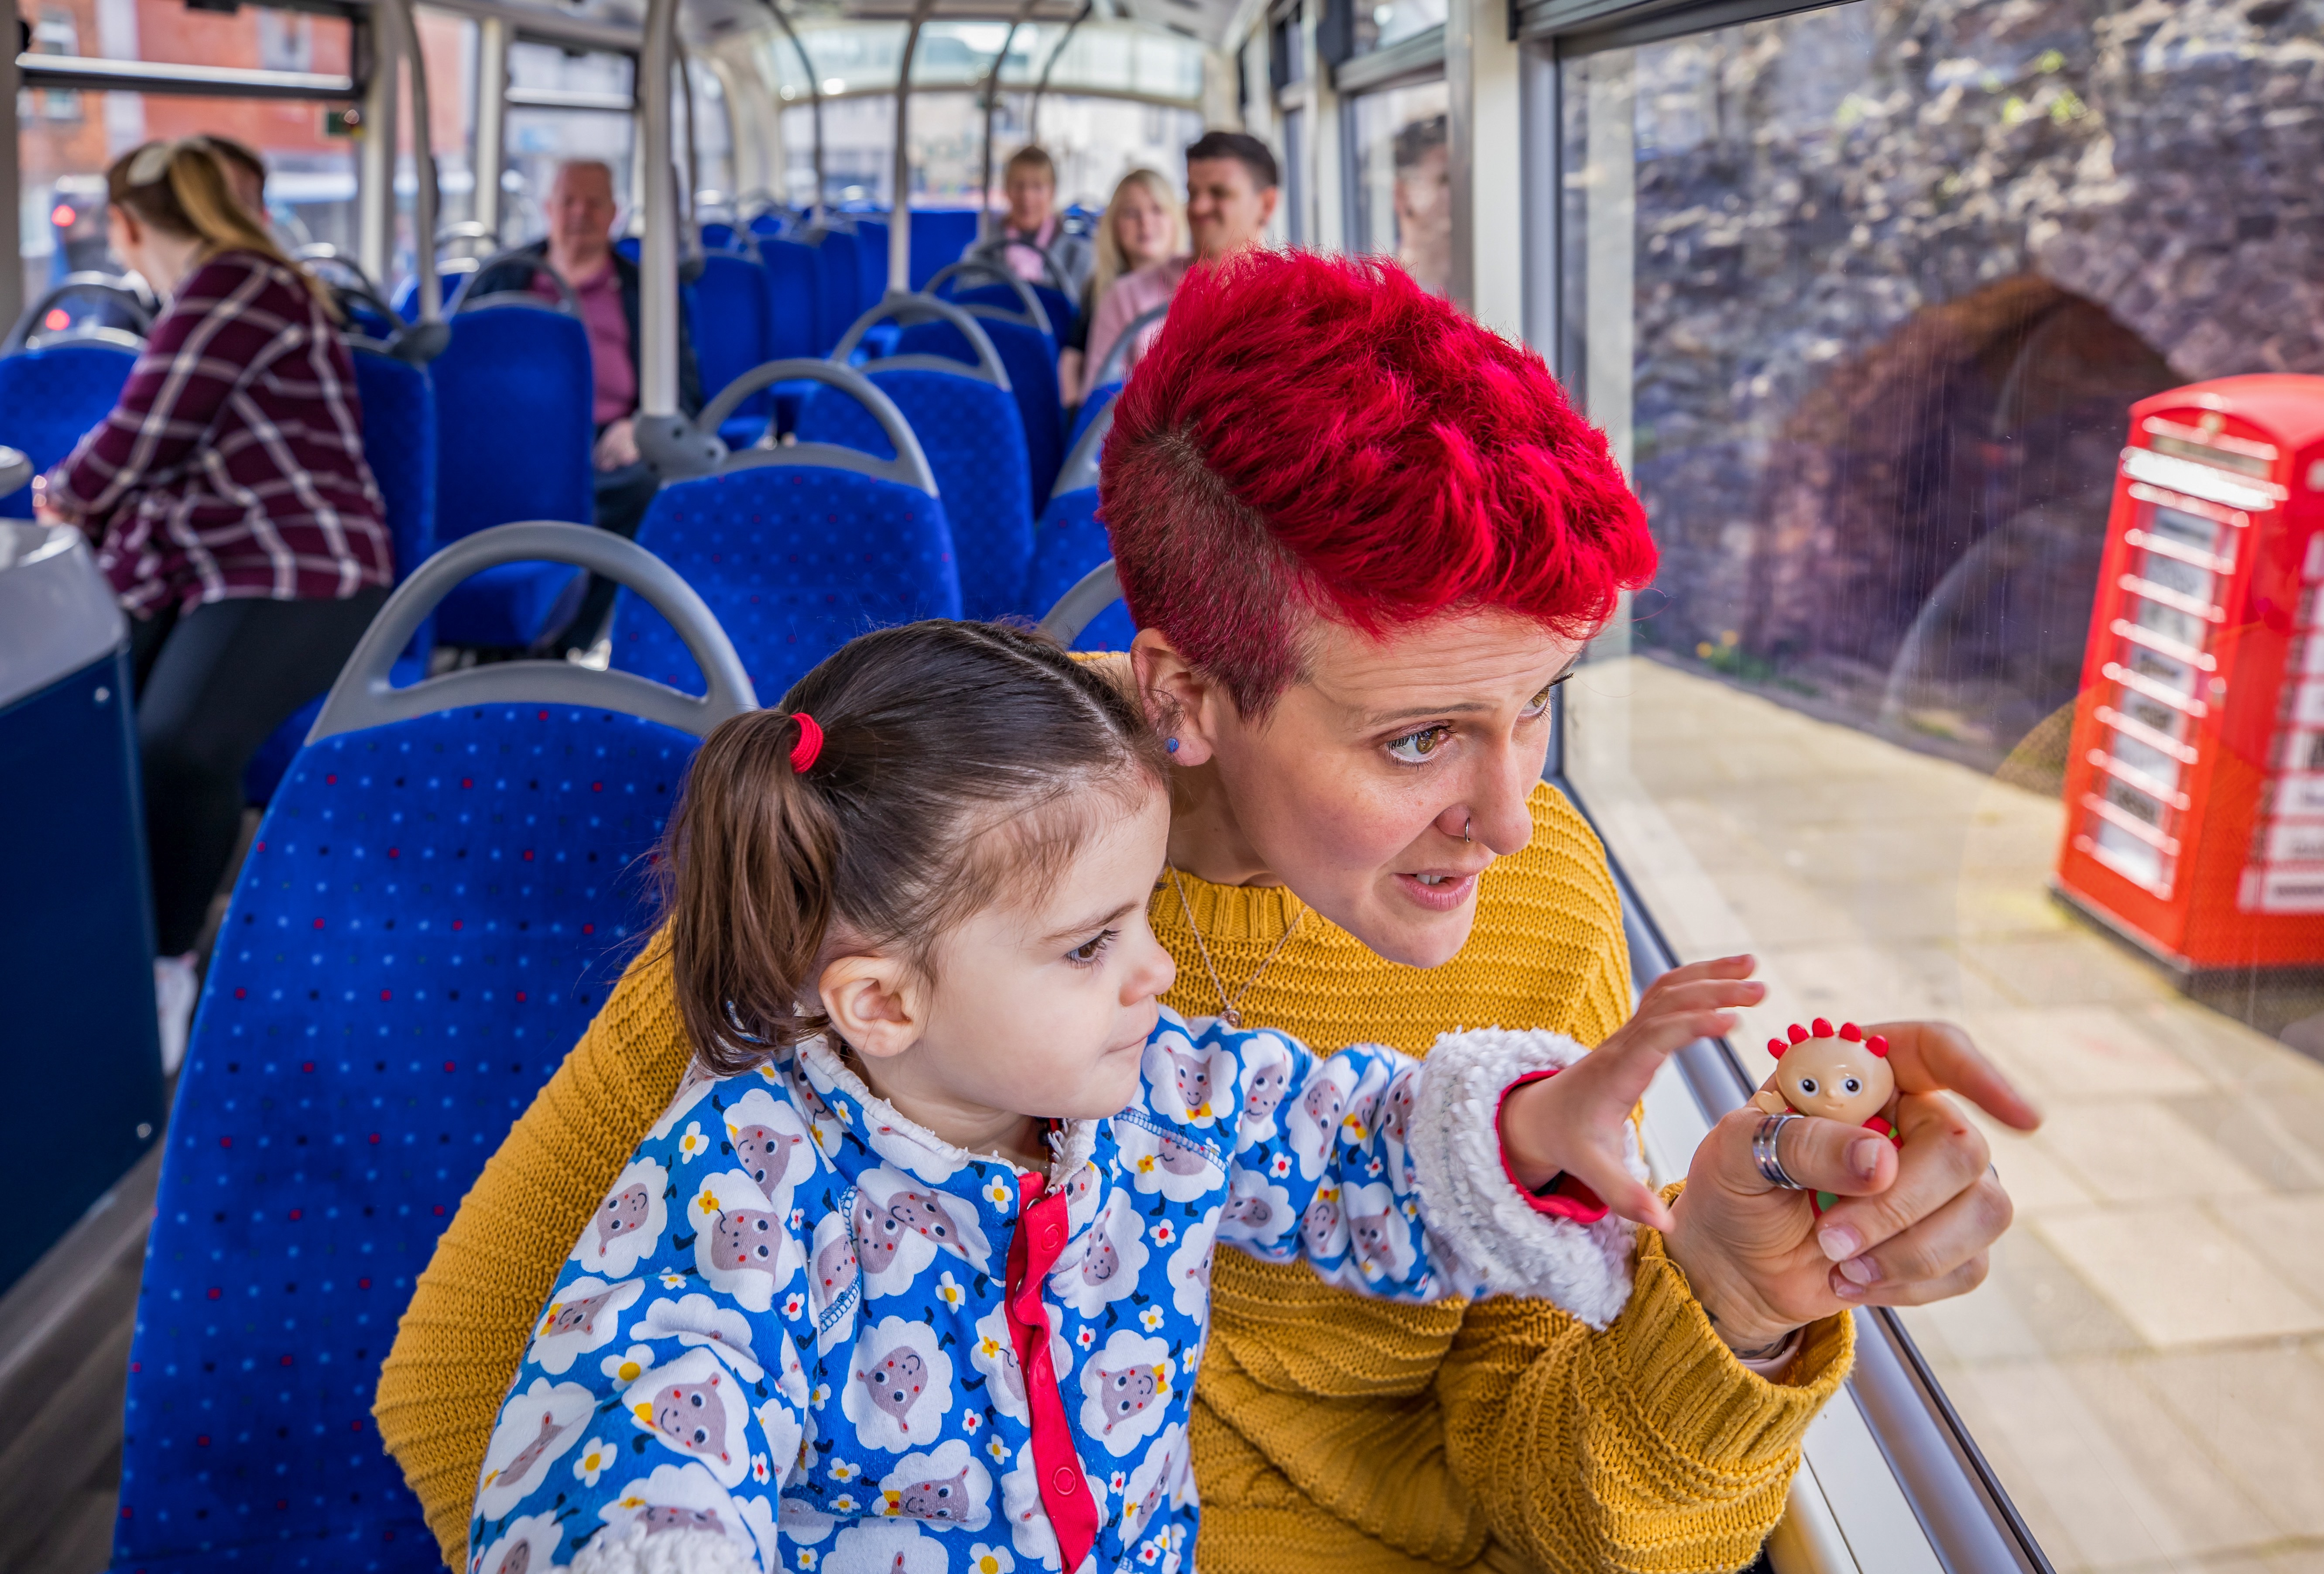 Mum and child on bus pointing out the window